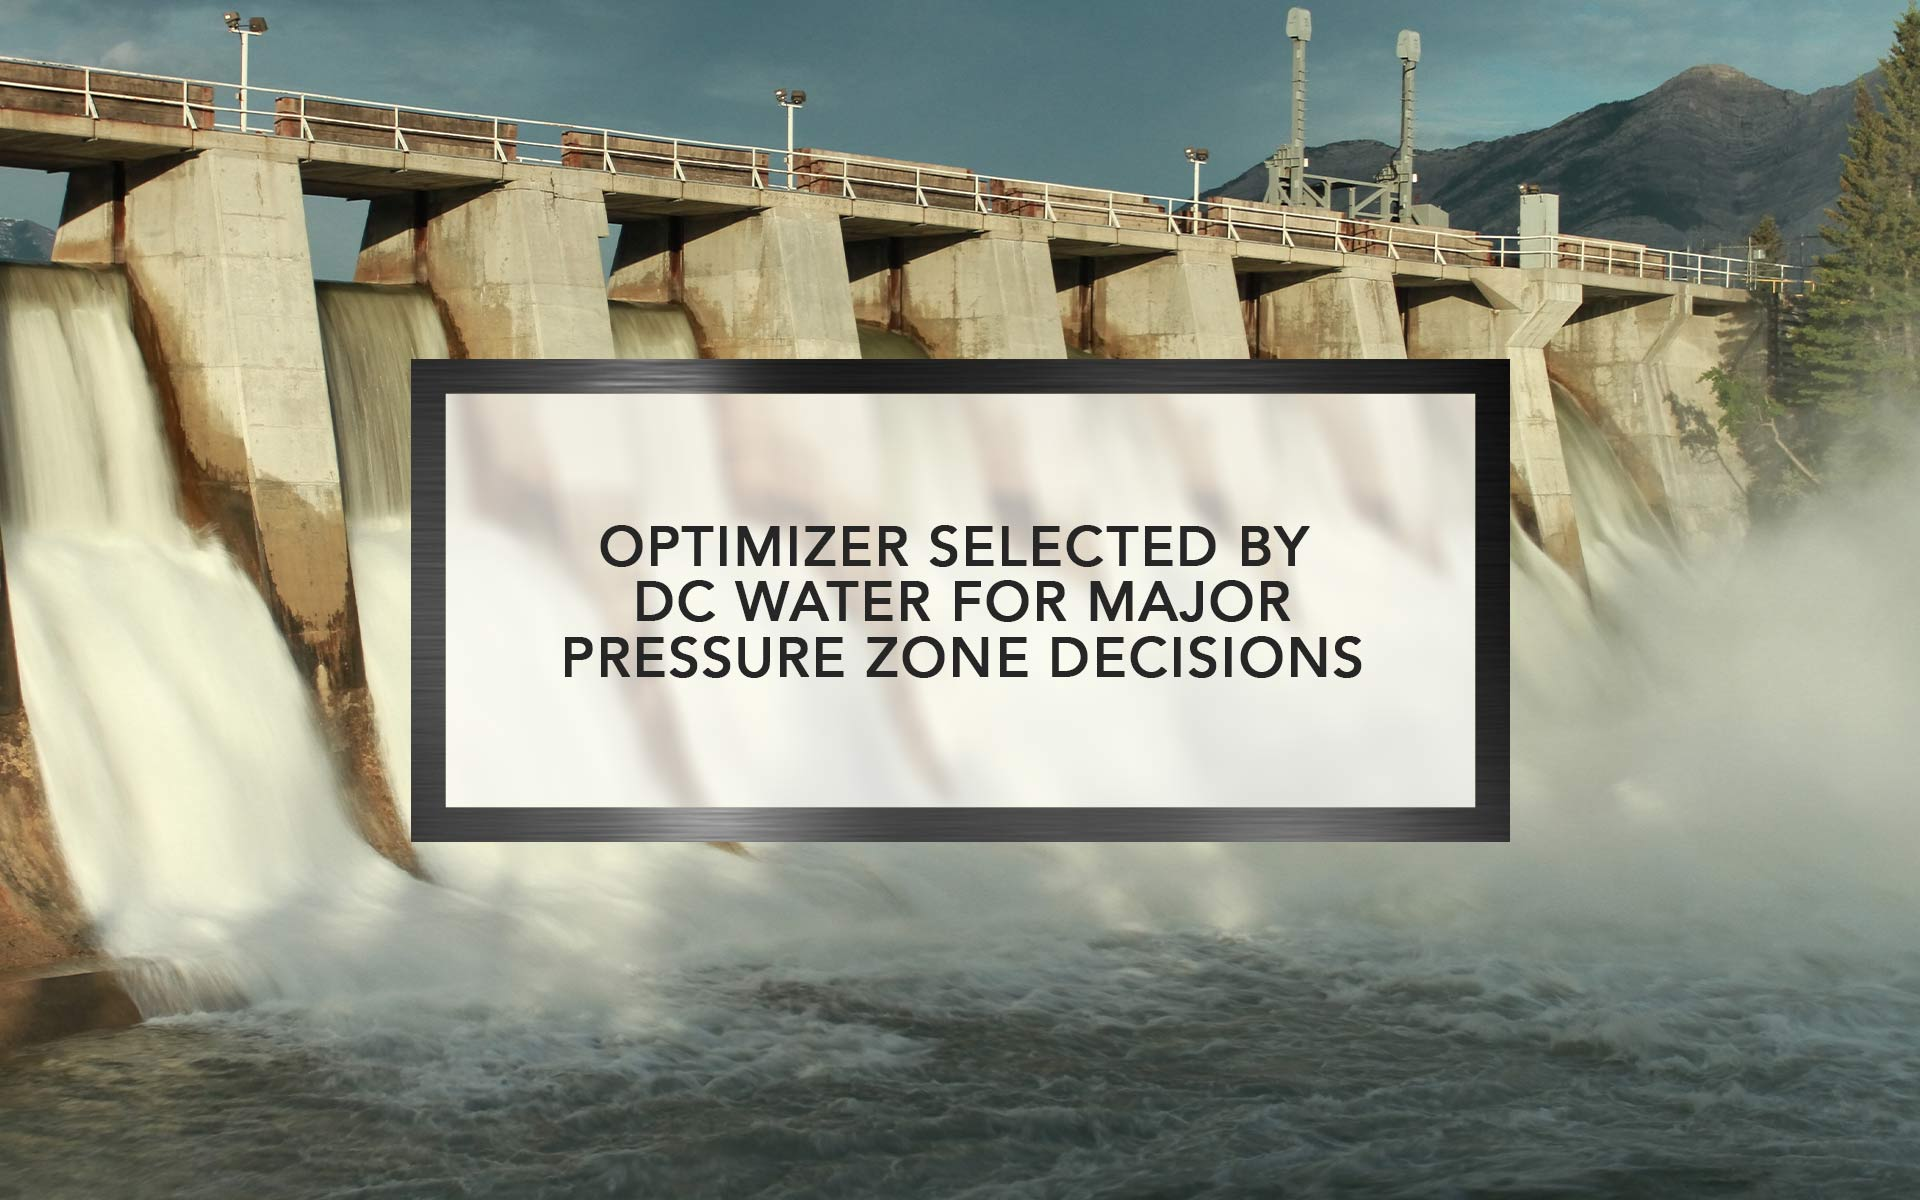 Optimizer selected by DC Water for major Pressure Zone decisions